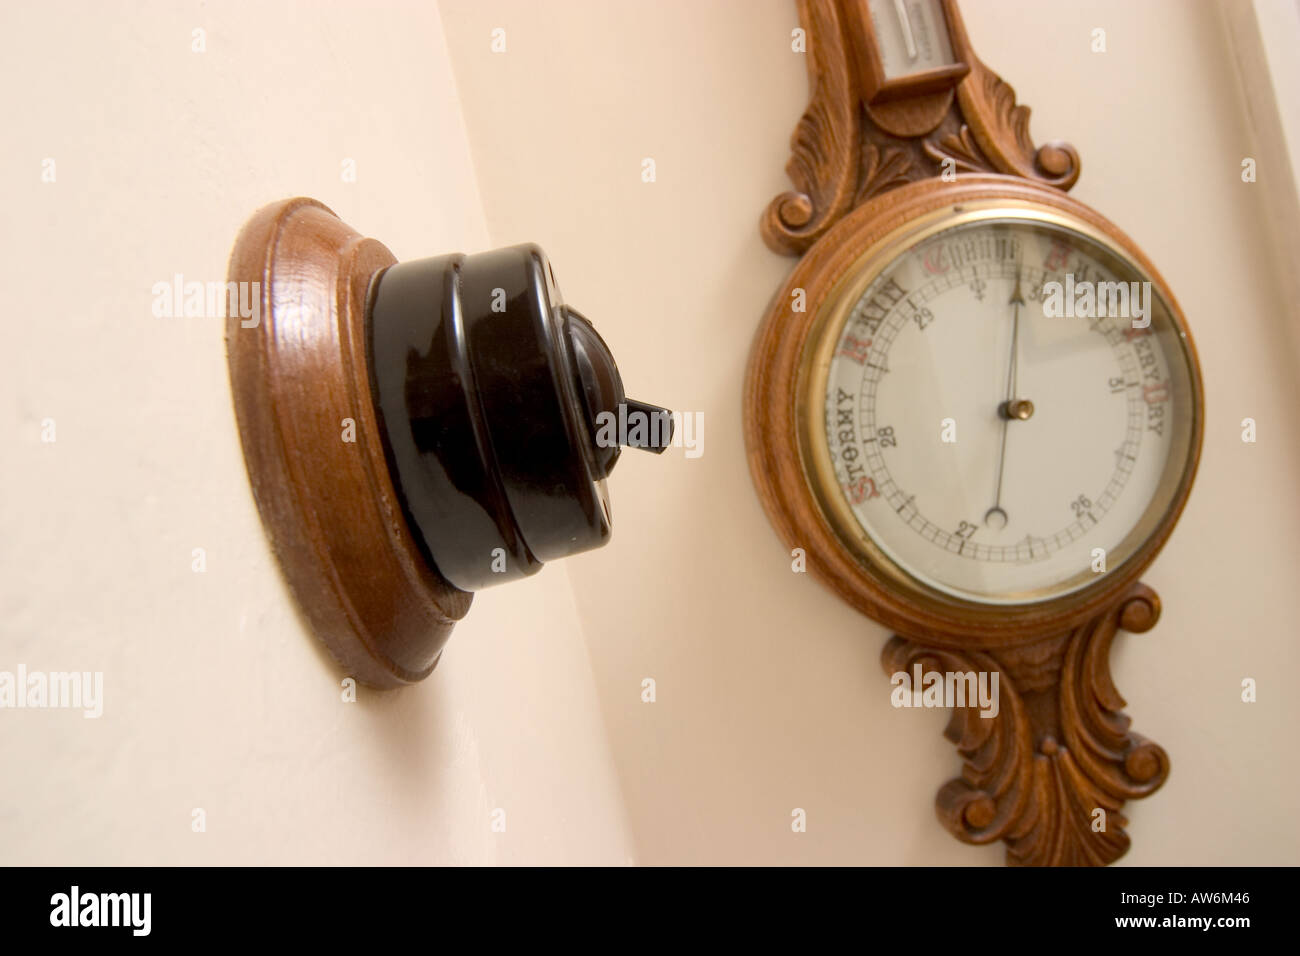 OLD FASHIONED BAKELITE LIGHT SWITCH WITH BAROMETER IN BACKGROUND - Stock Image